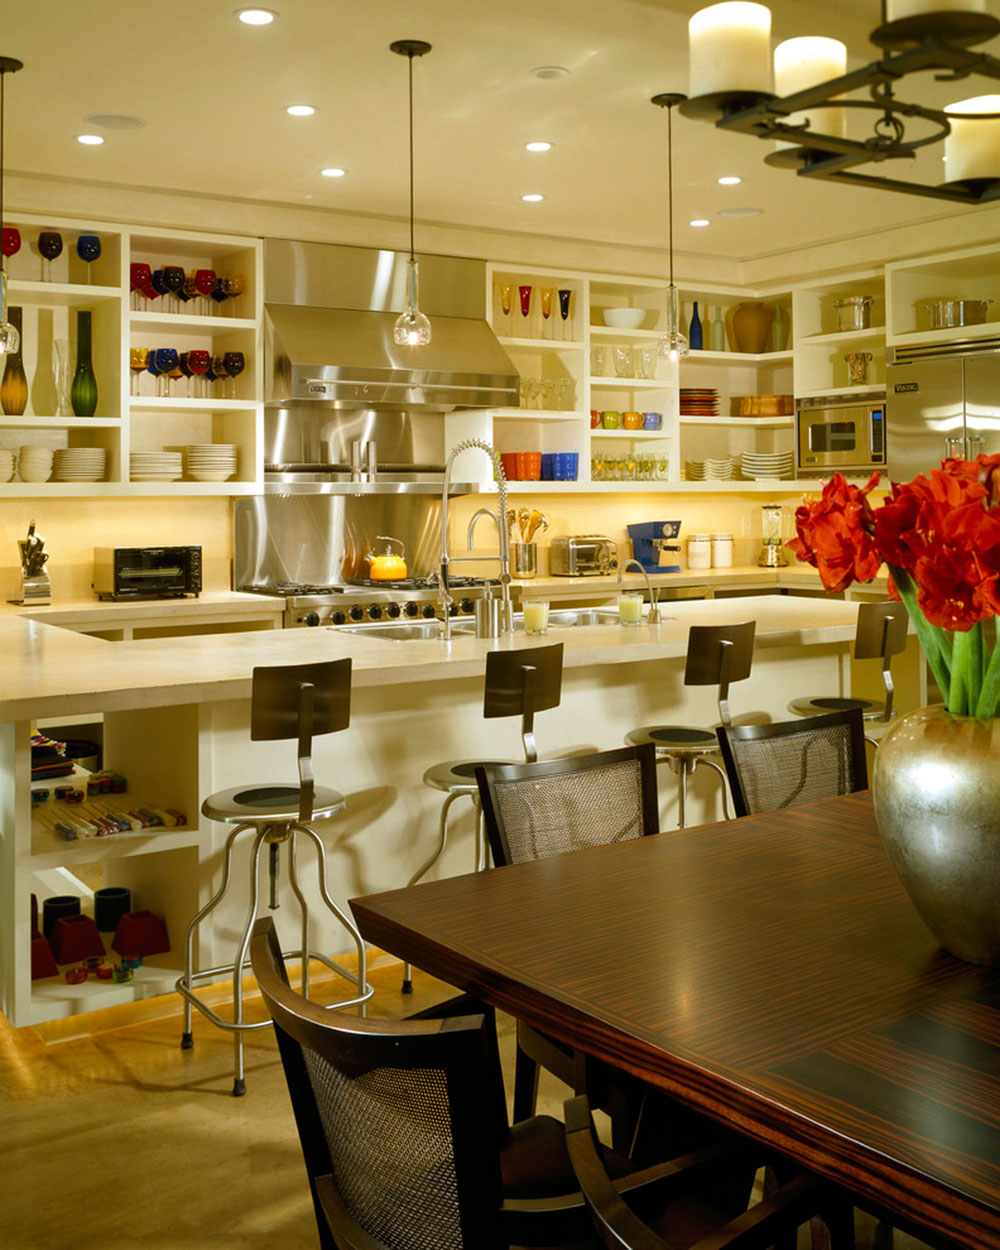 open kitchen cabinets are easier to handle open kitchen cabinets Open Kitchen Cabinets Are Easier To Handle1